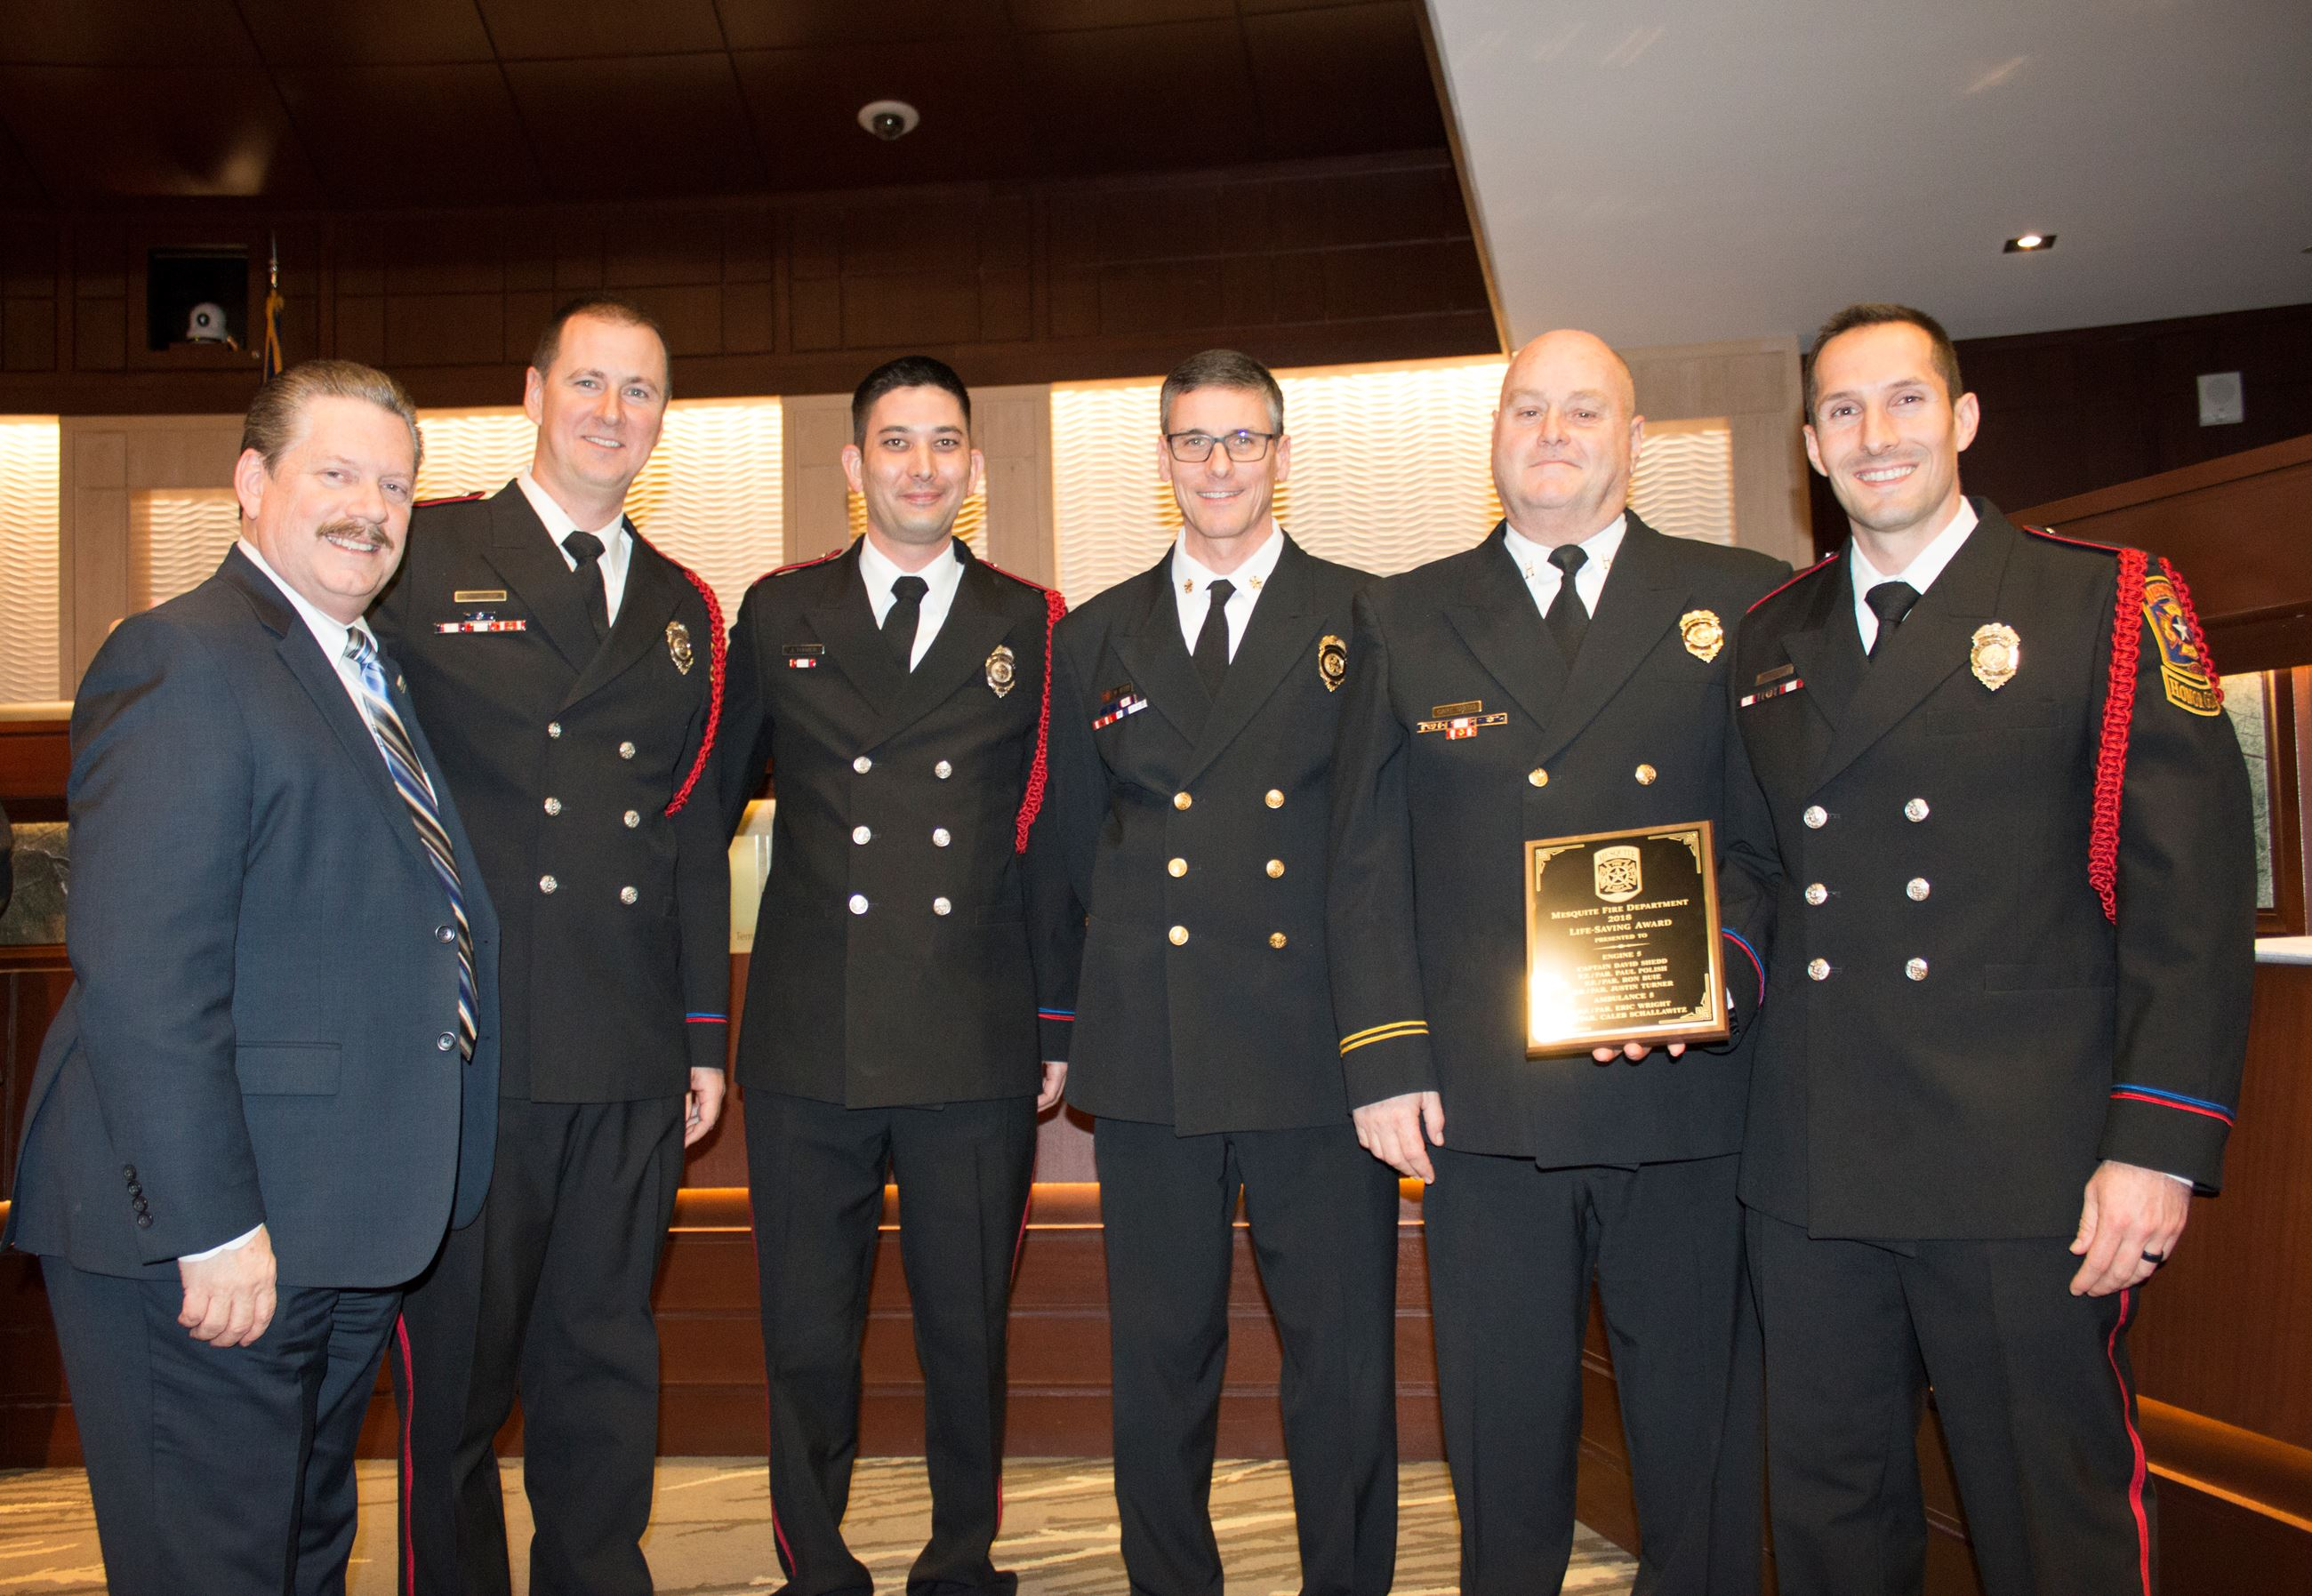 2018 Fire Awards LifeSaving 2 Aug 16 2017